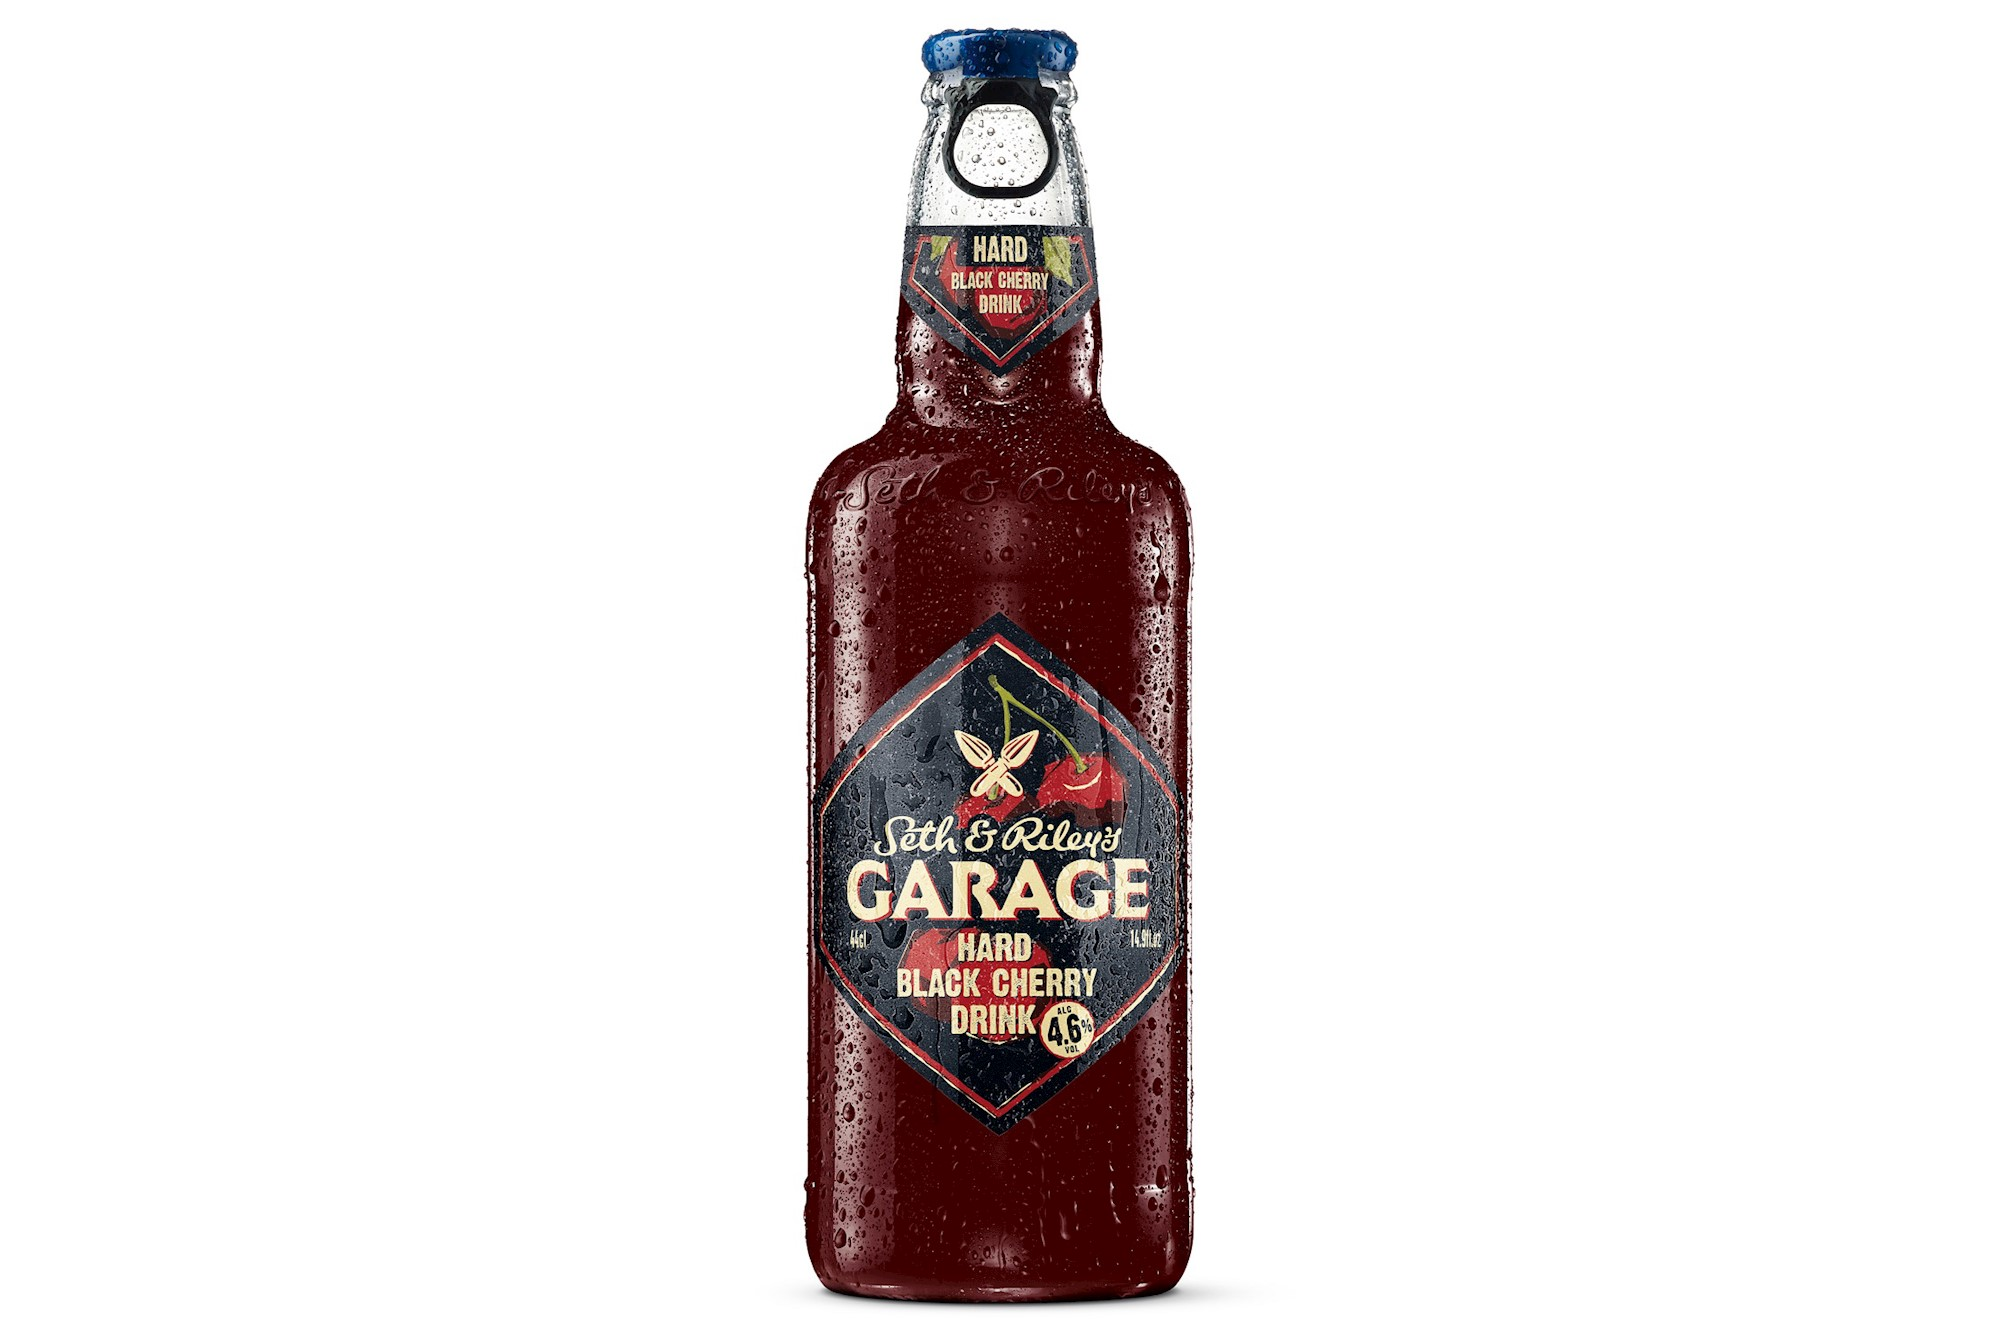 garage-hard-black-cherry